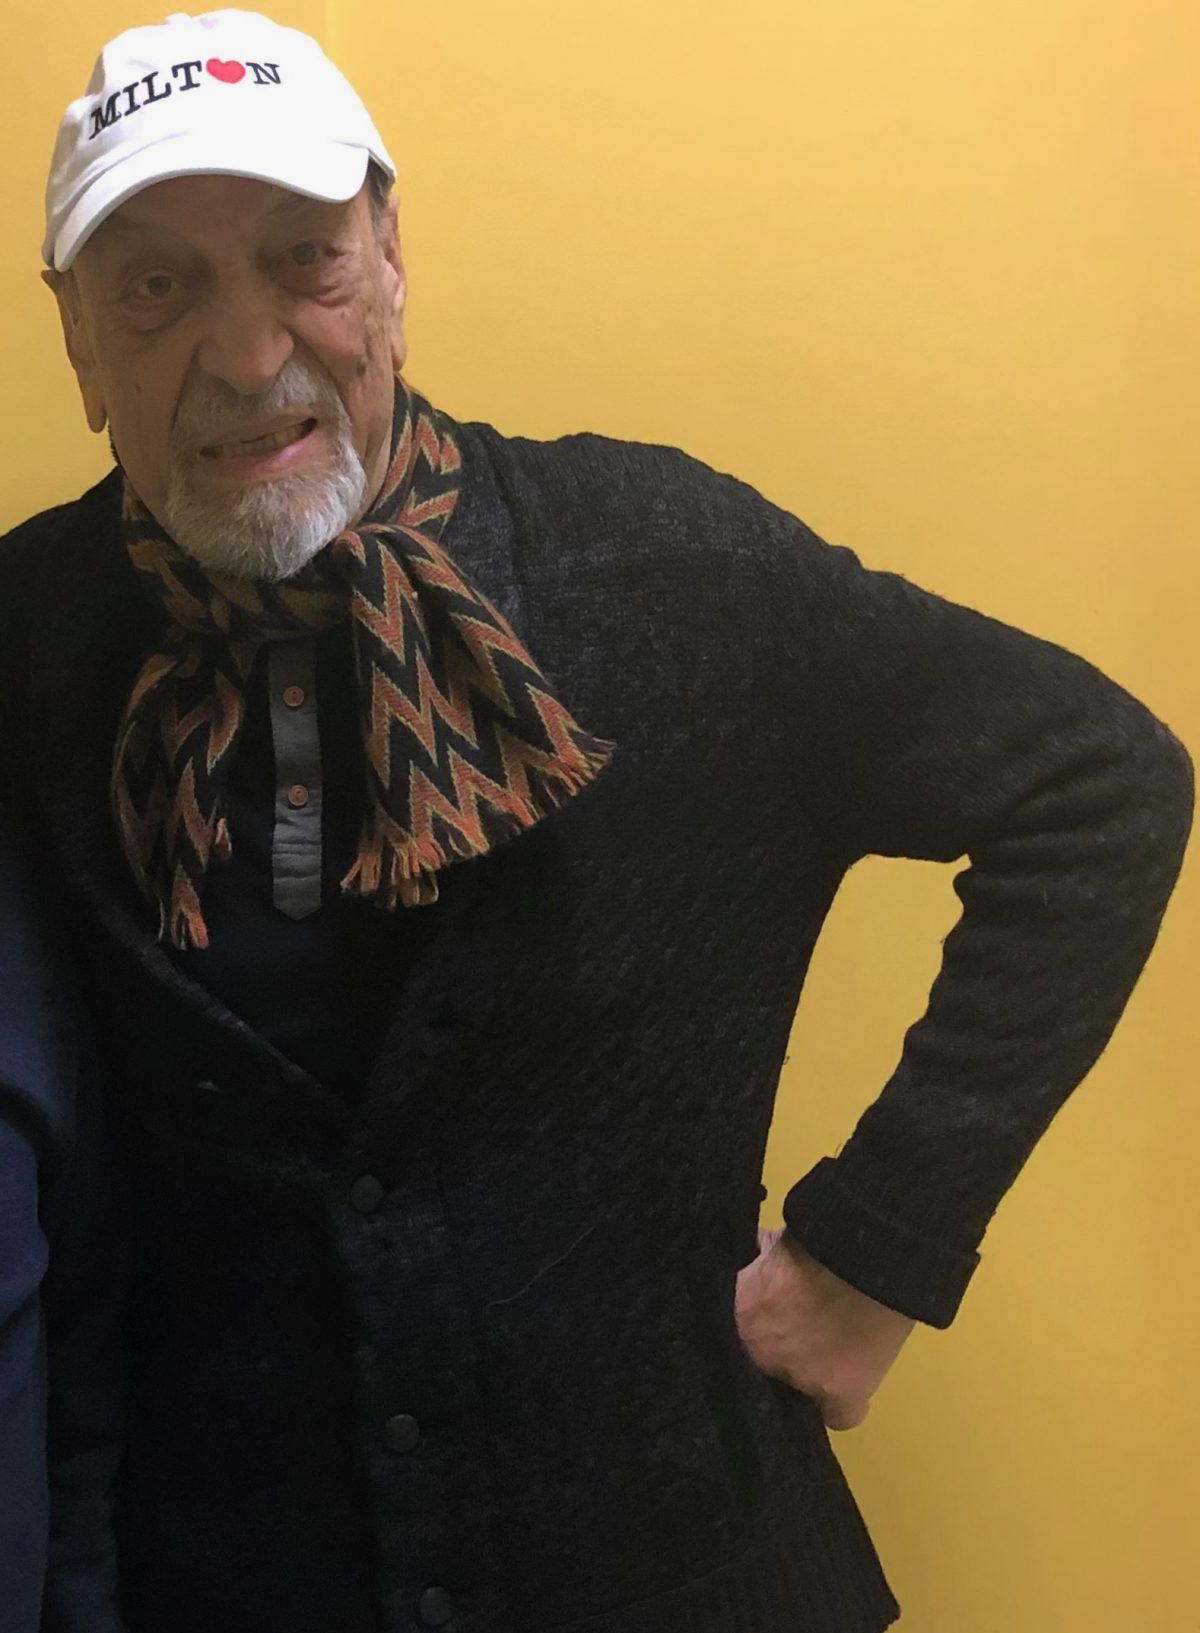 photo of man in black sweater